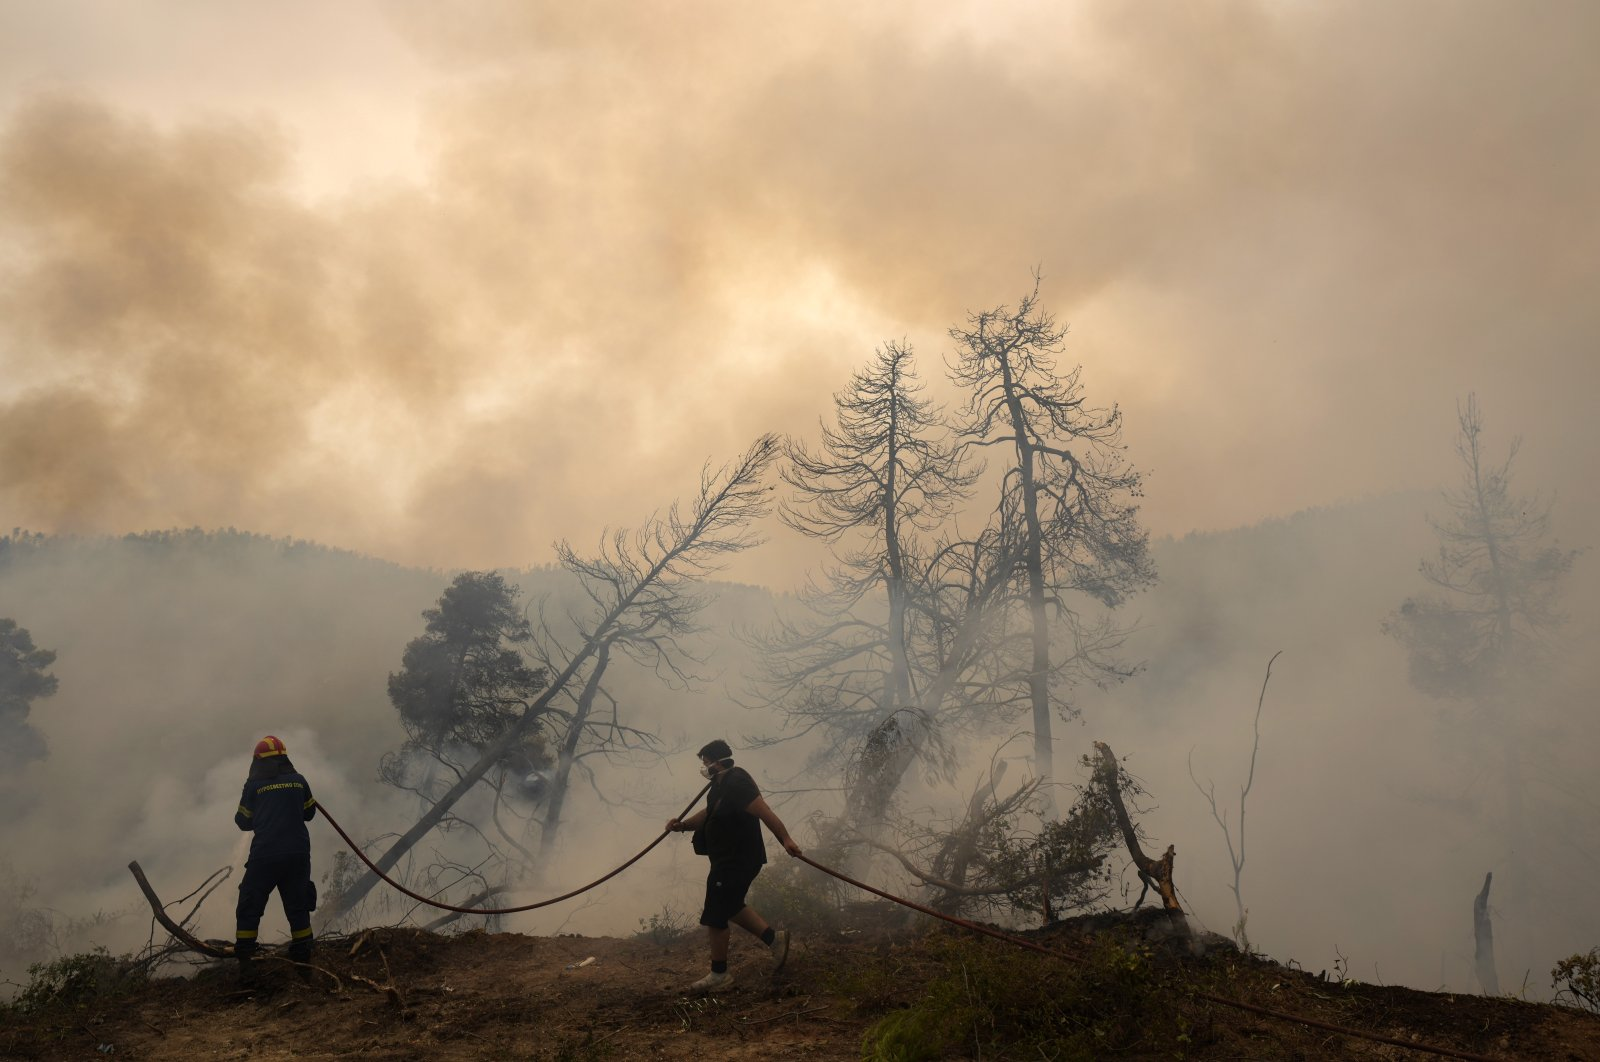 A firefighter tries to extinguish the flames as a local resident holds a water hose during a wildfire at Ellinika village on Evia island, about 176 kilometers (110 miles) north of Athens, Greece, Aug. 9, 2021. (AP Photo)